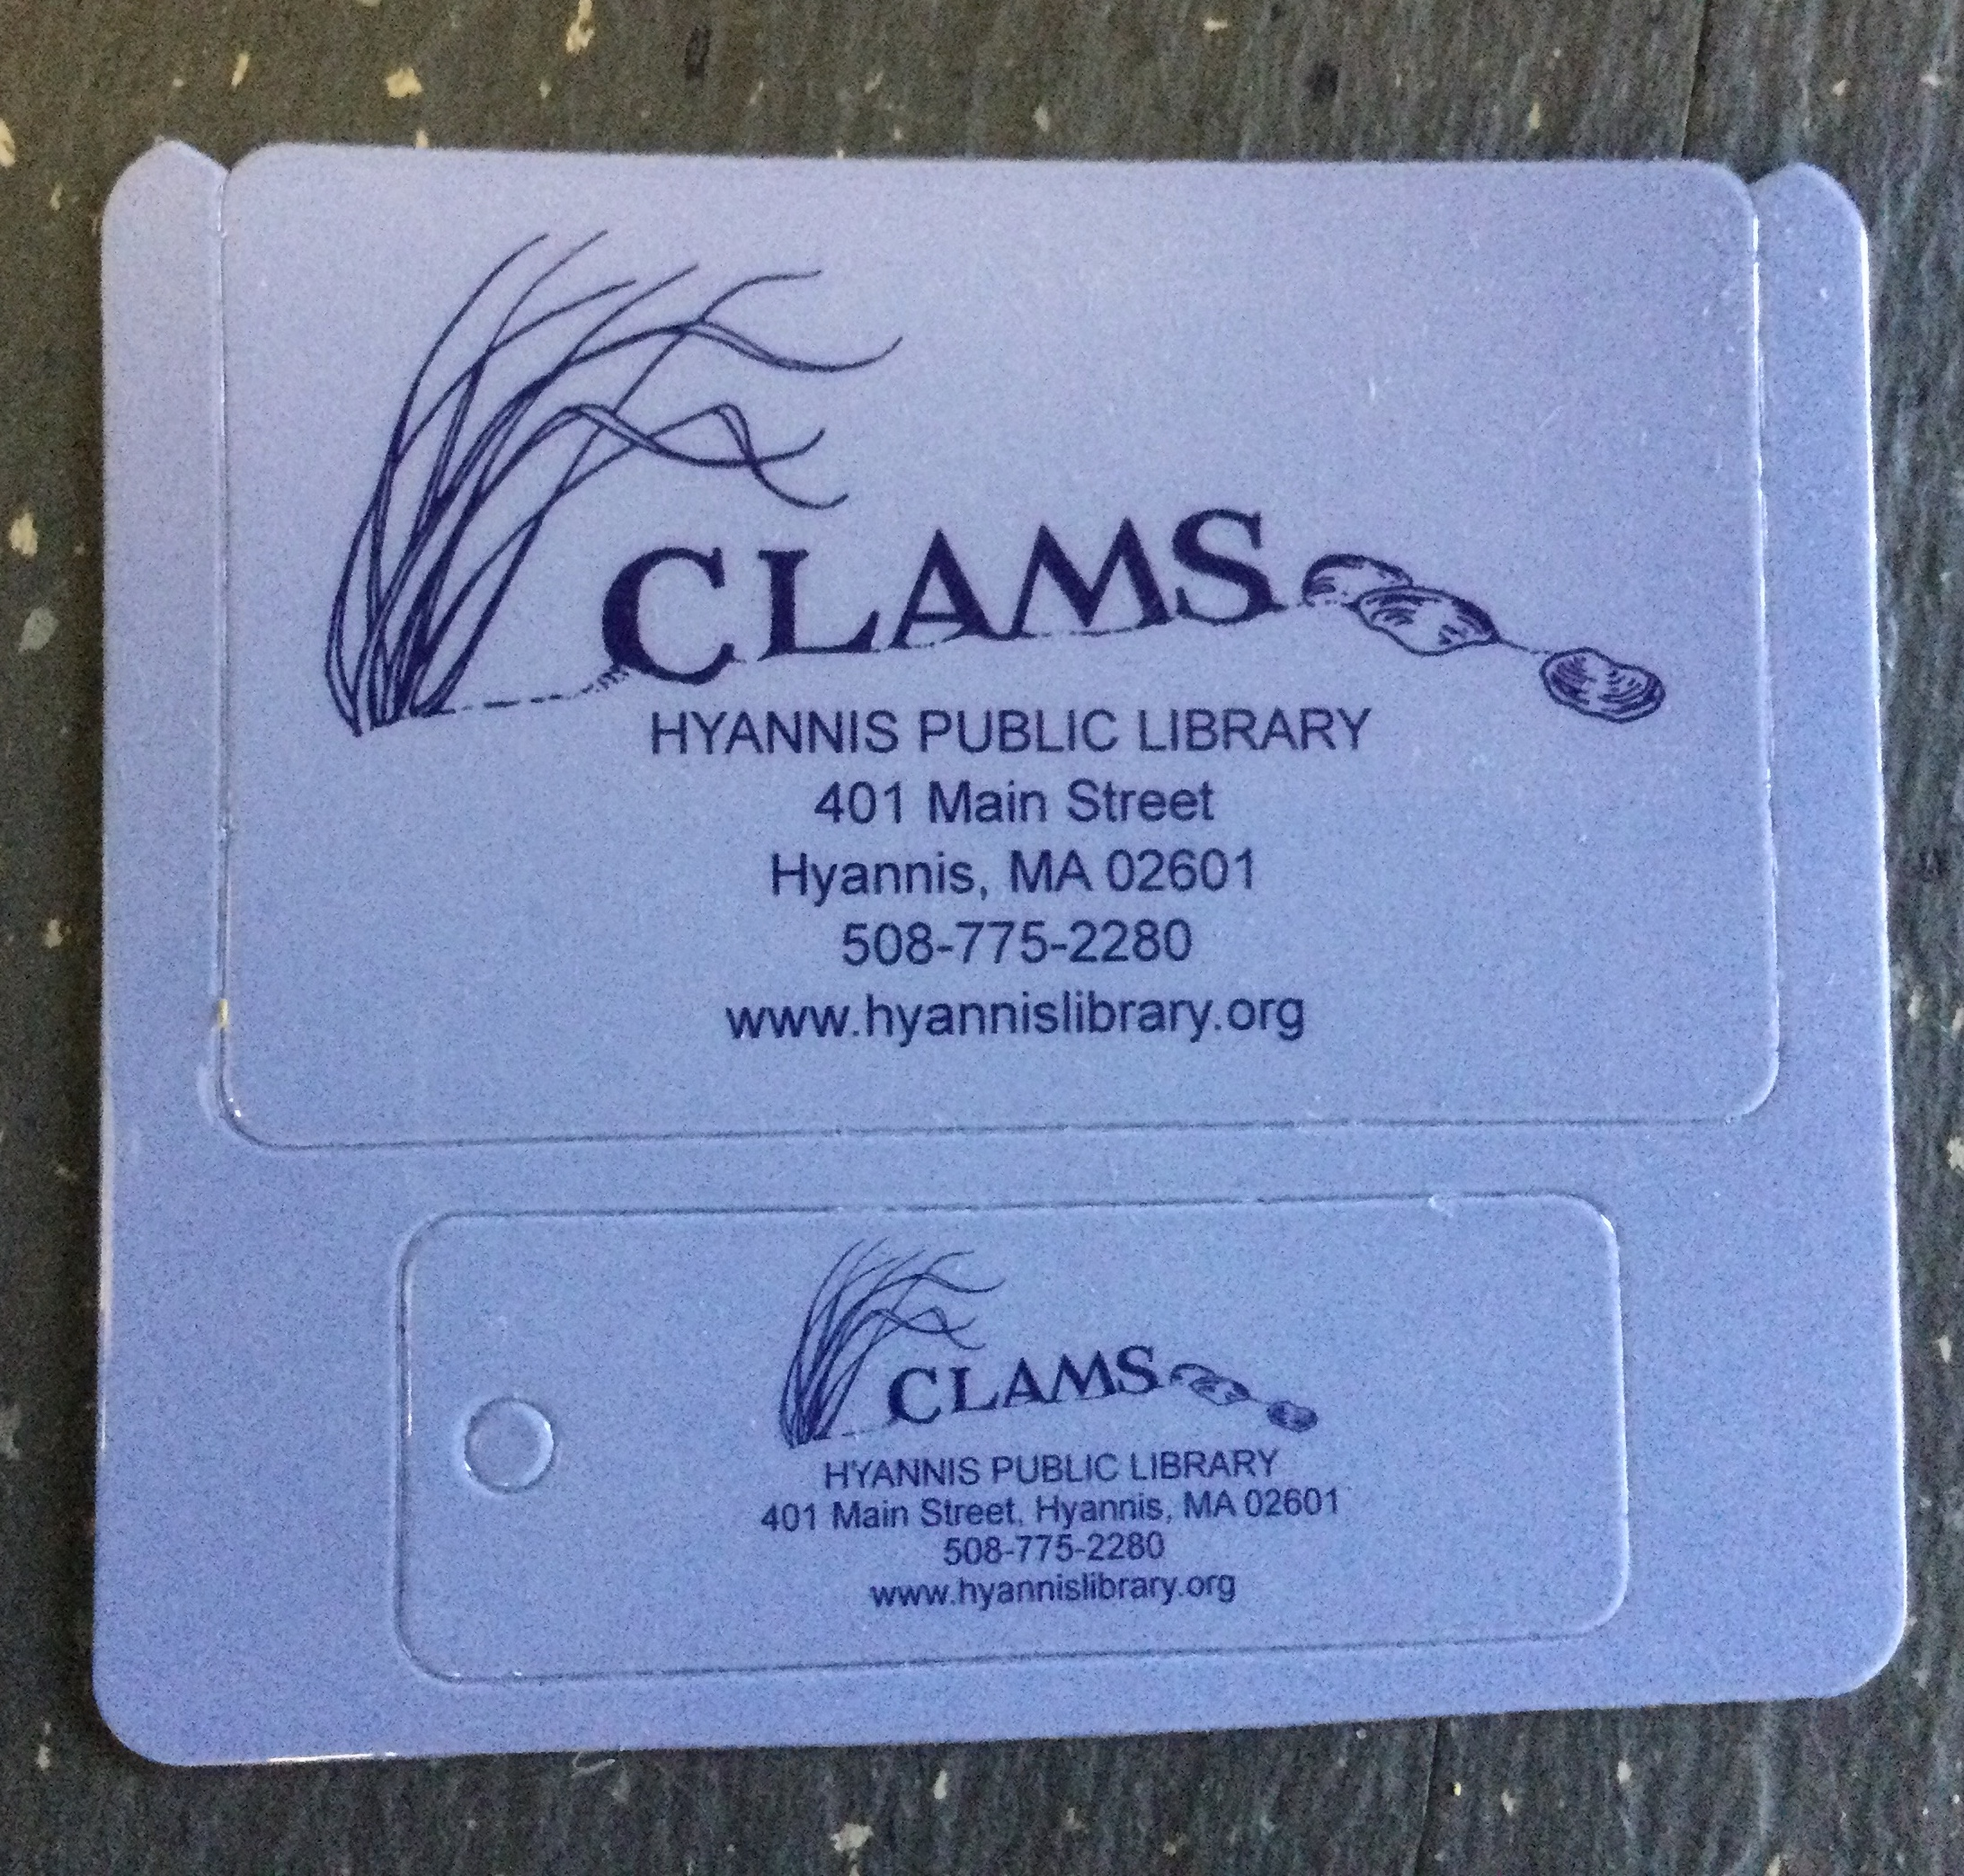 Hyannis Public Library CLAMS card